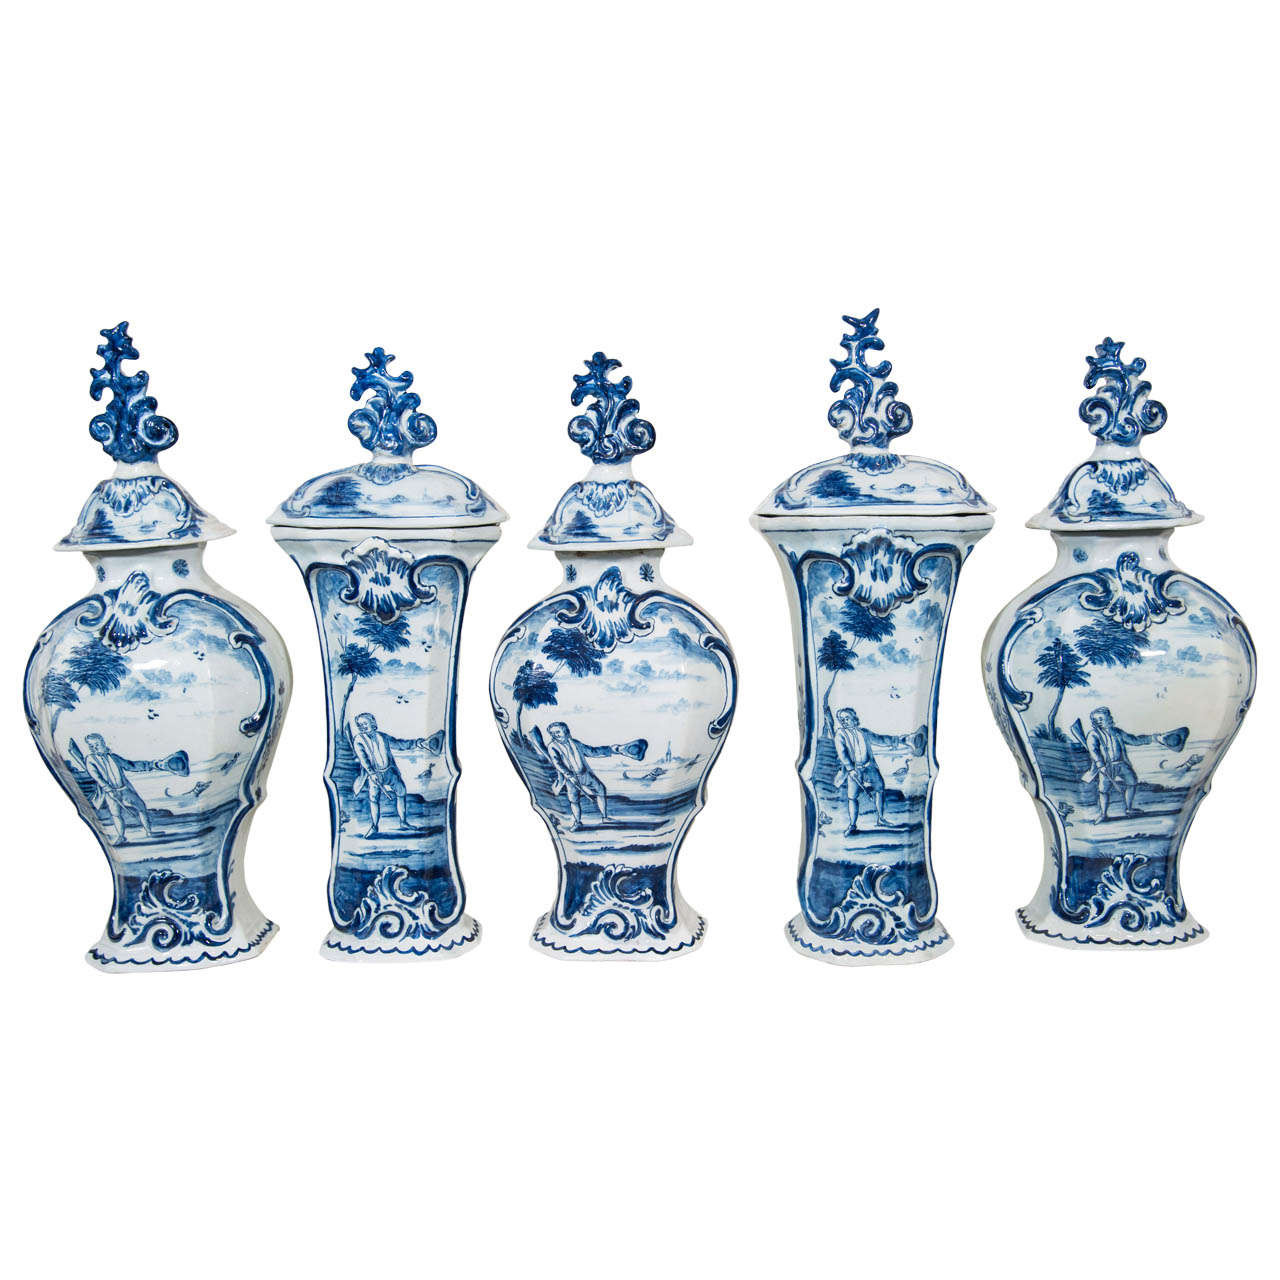 delft vase value of five piece blue and white delft garniture at 1stdibs throughout five piece blue and white delft garniture for sale